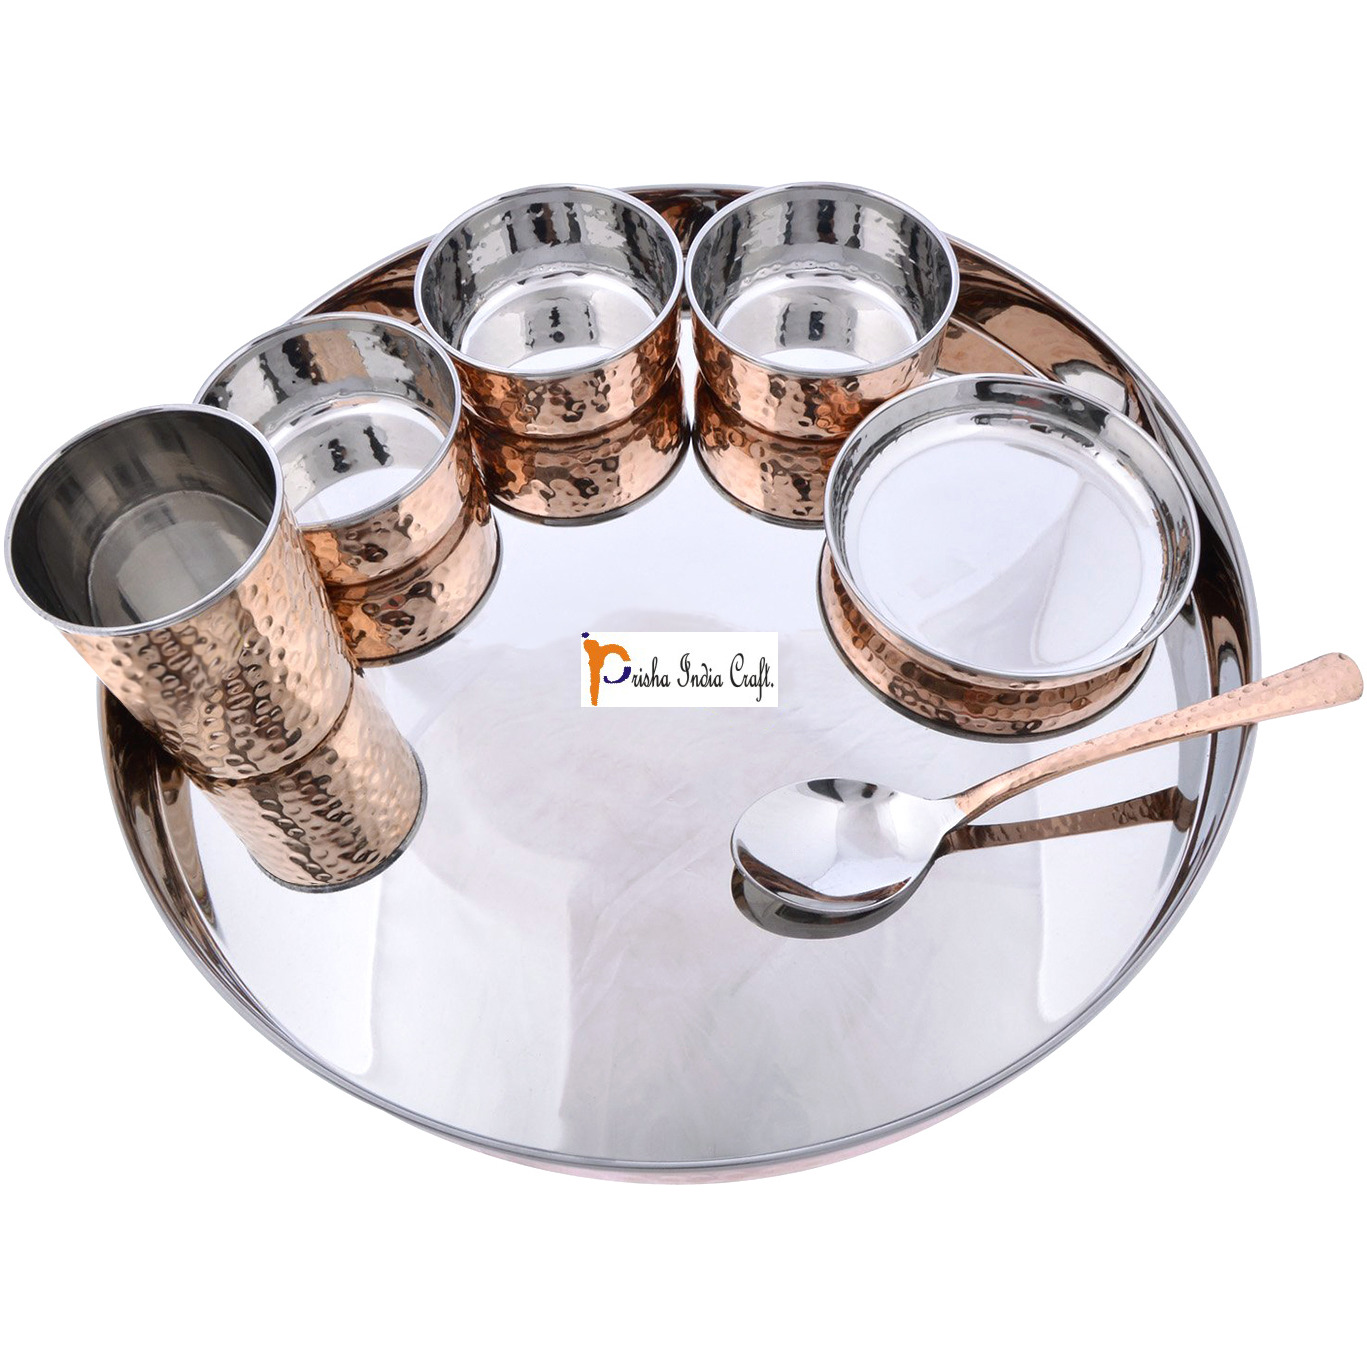 Prisha India Craft B. Set of 2 Dinnerware Traditional Stainless Steel Copper Dinner Set of Thali Plate, Bowls, Glass and Spoon, Dia 13  With 1 Embossed Stainless Steel Copper Pitcher Jug - Christmas Gift